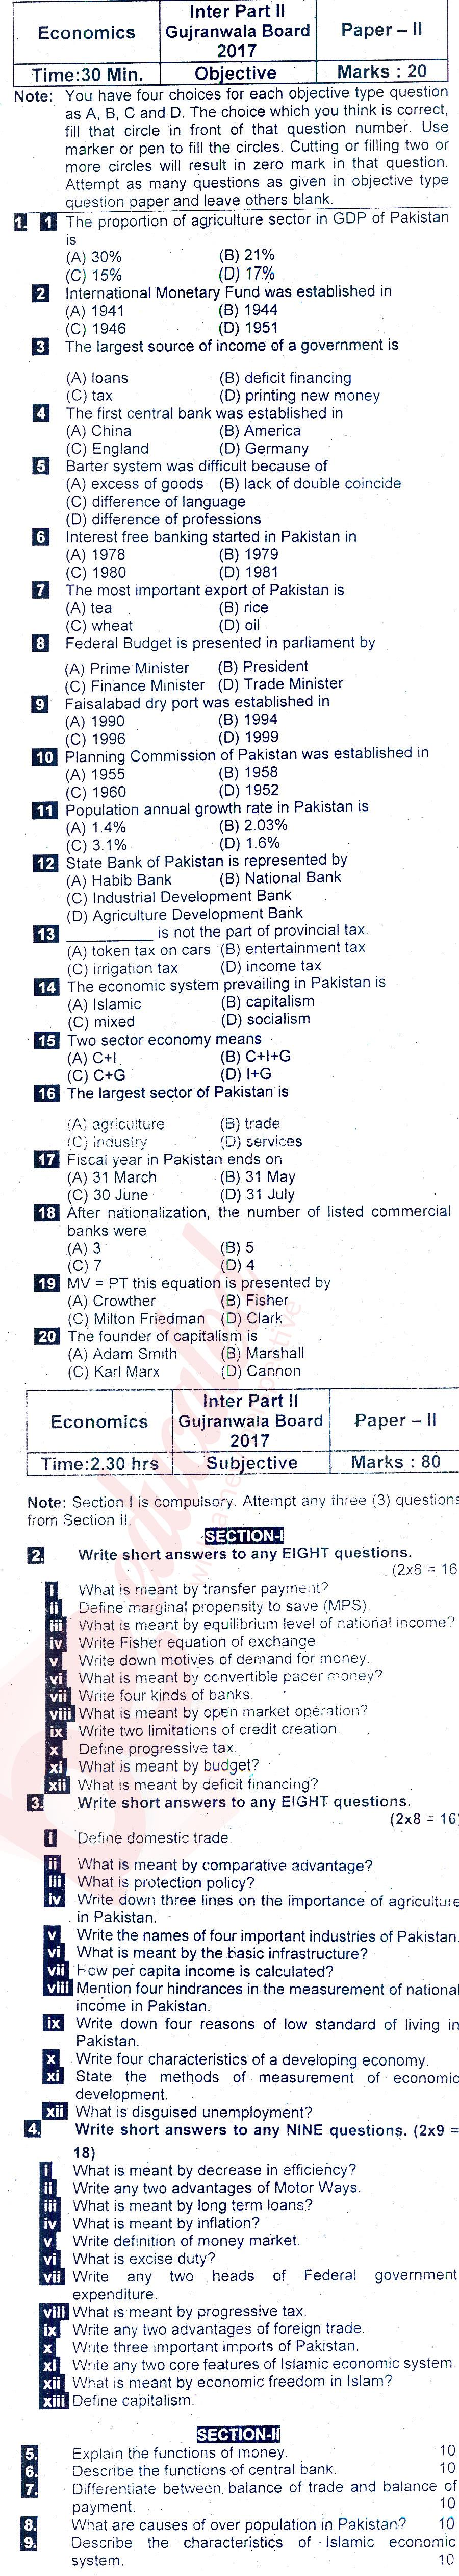 economics papers Economic term papers are of many kinds and are written for various aspects of economics such as economic factors, economics stability, economic policies,.